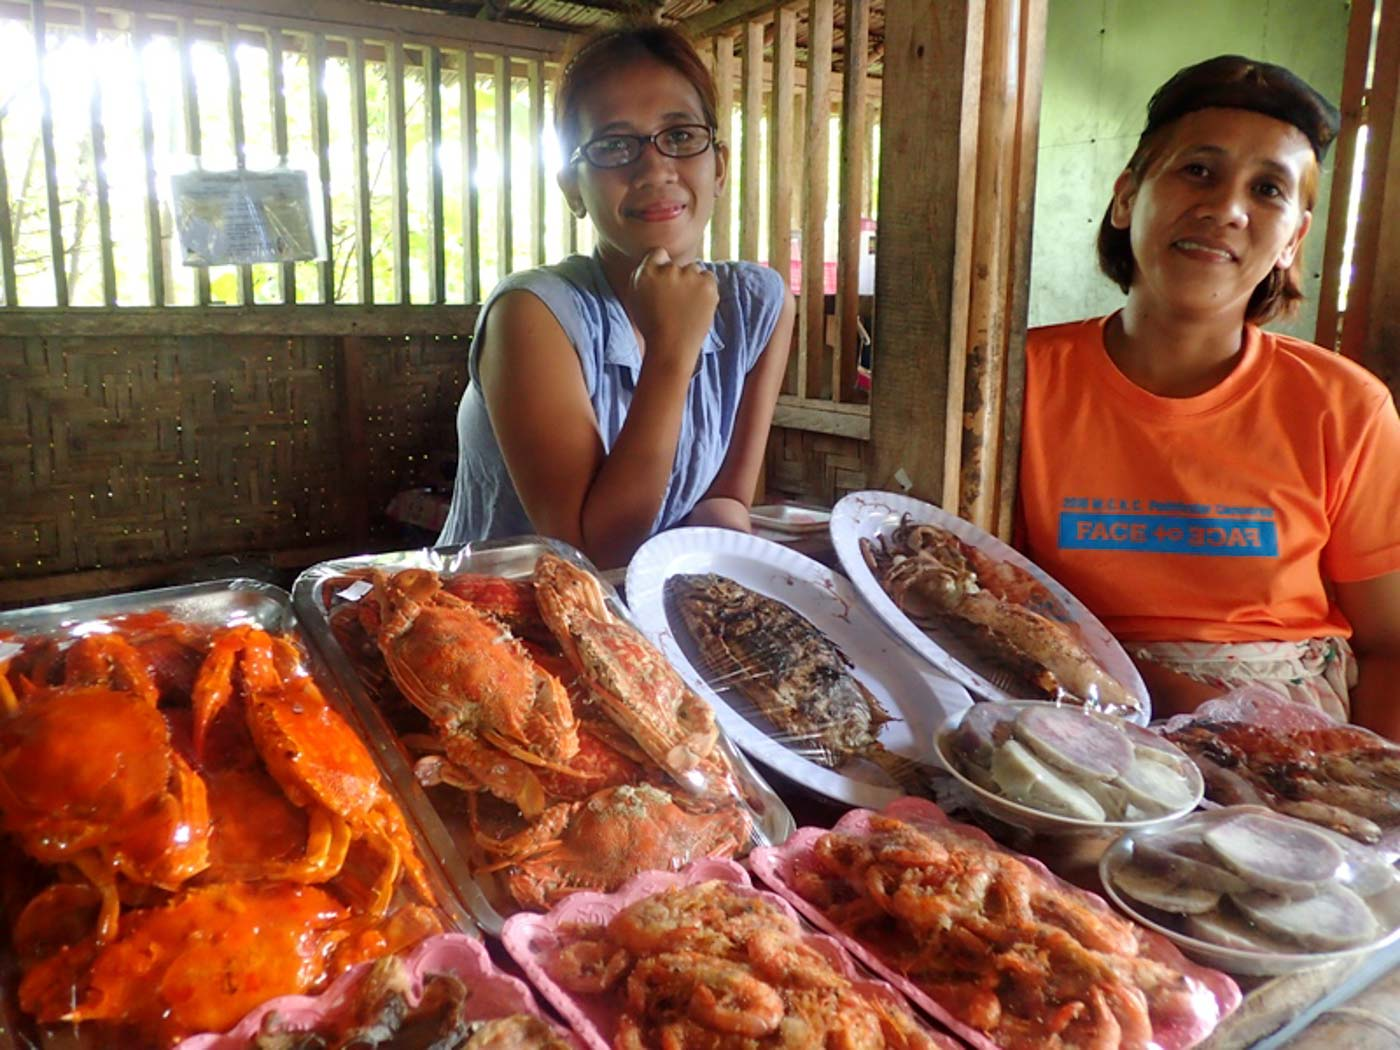 READY TO EAT. Uphill is the cooked food for sale. Photo by Claire Madarang/Rappler